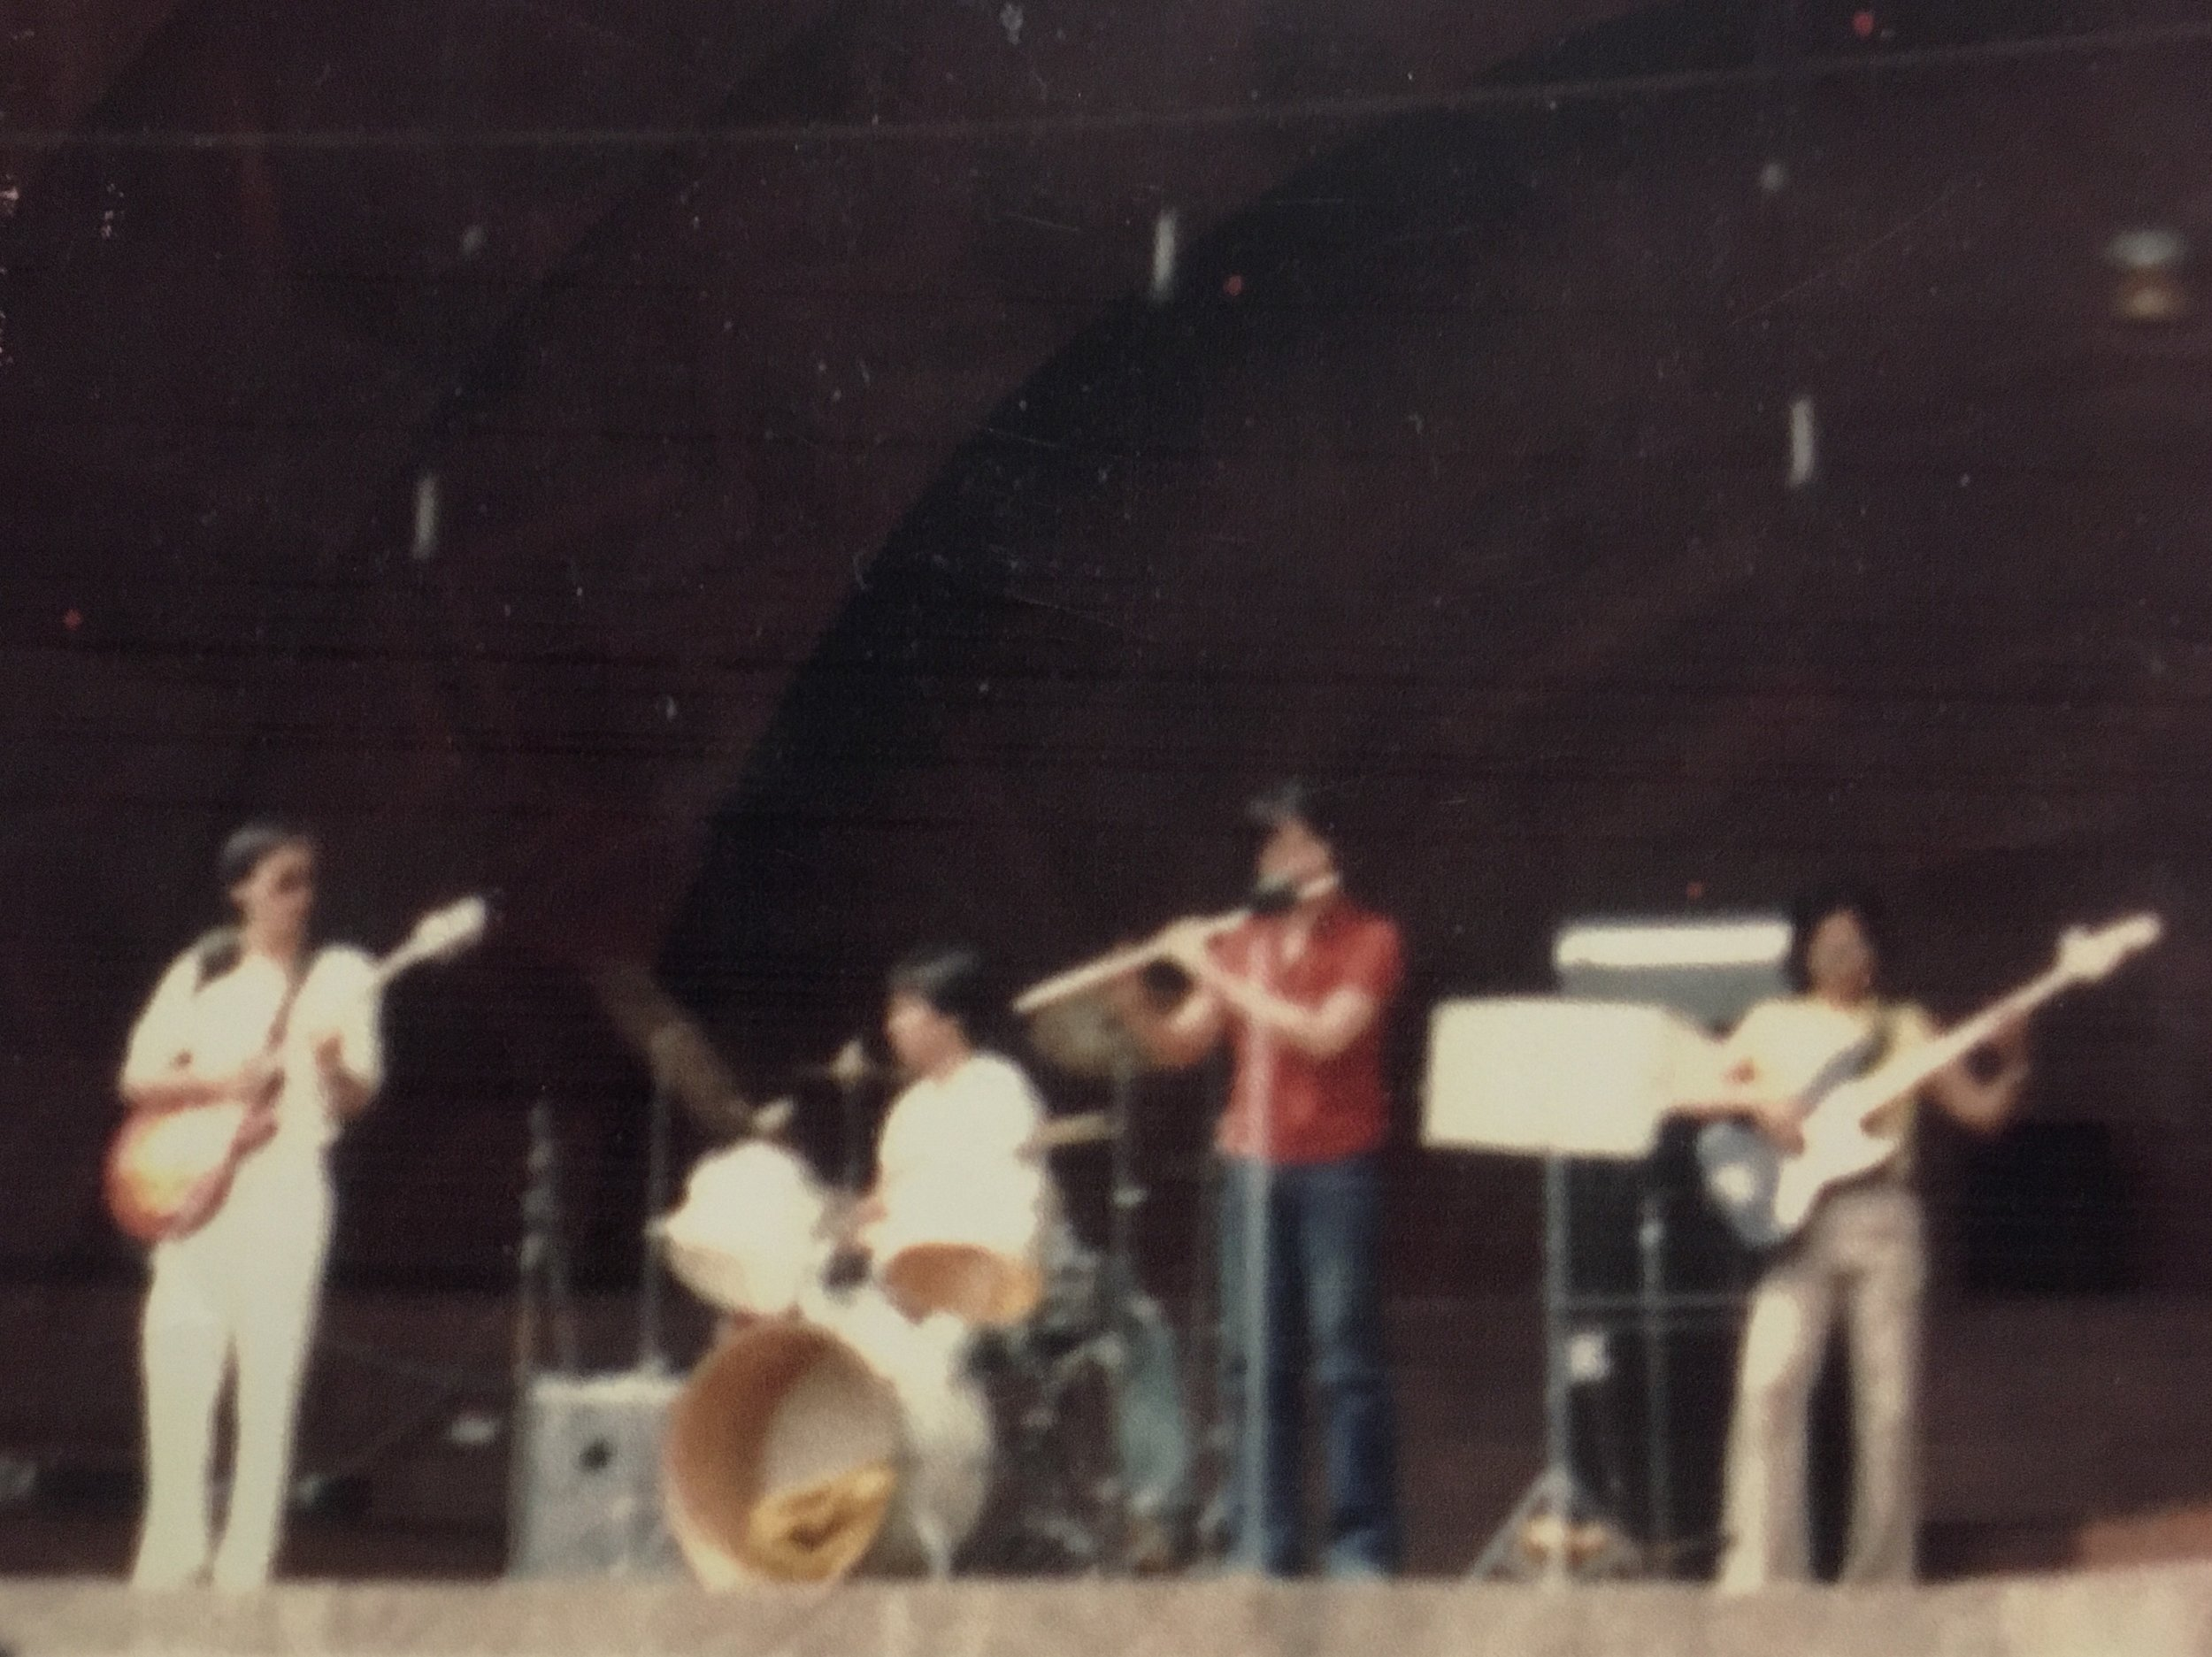 Sojourners 1982 live at Esplanade Boston